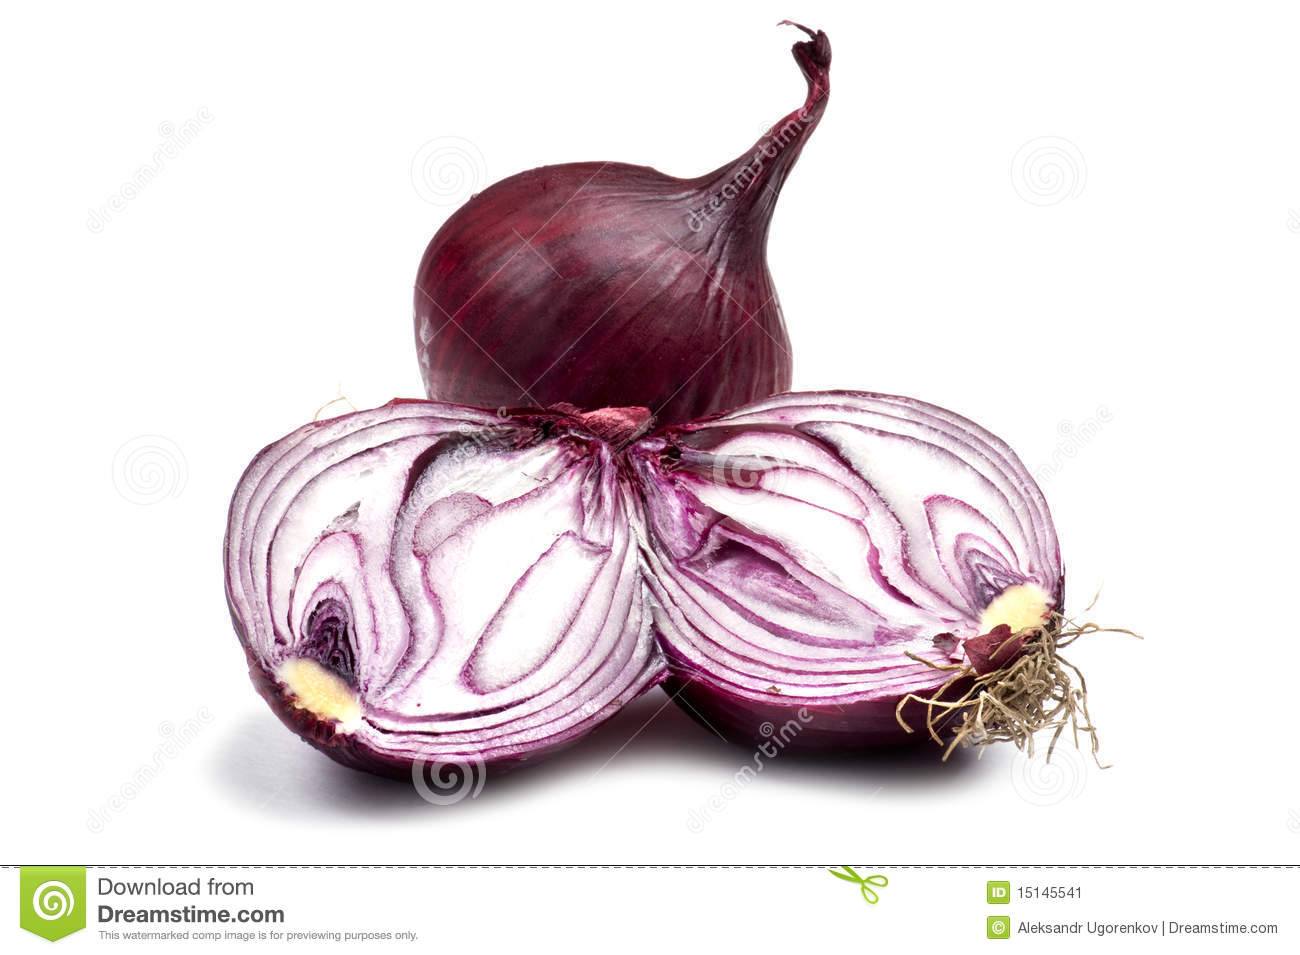 Cutting Red Onion Close Up Stock Image - Image: 15145541